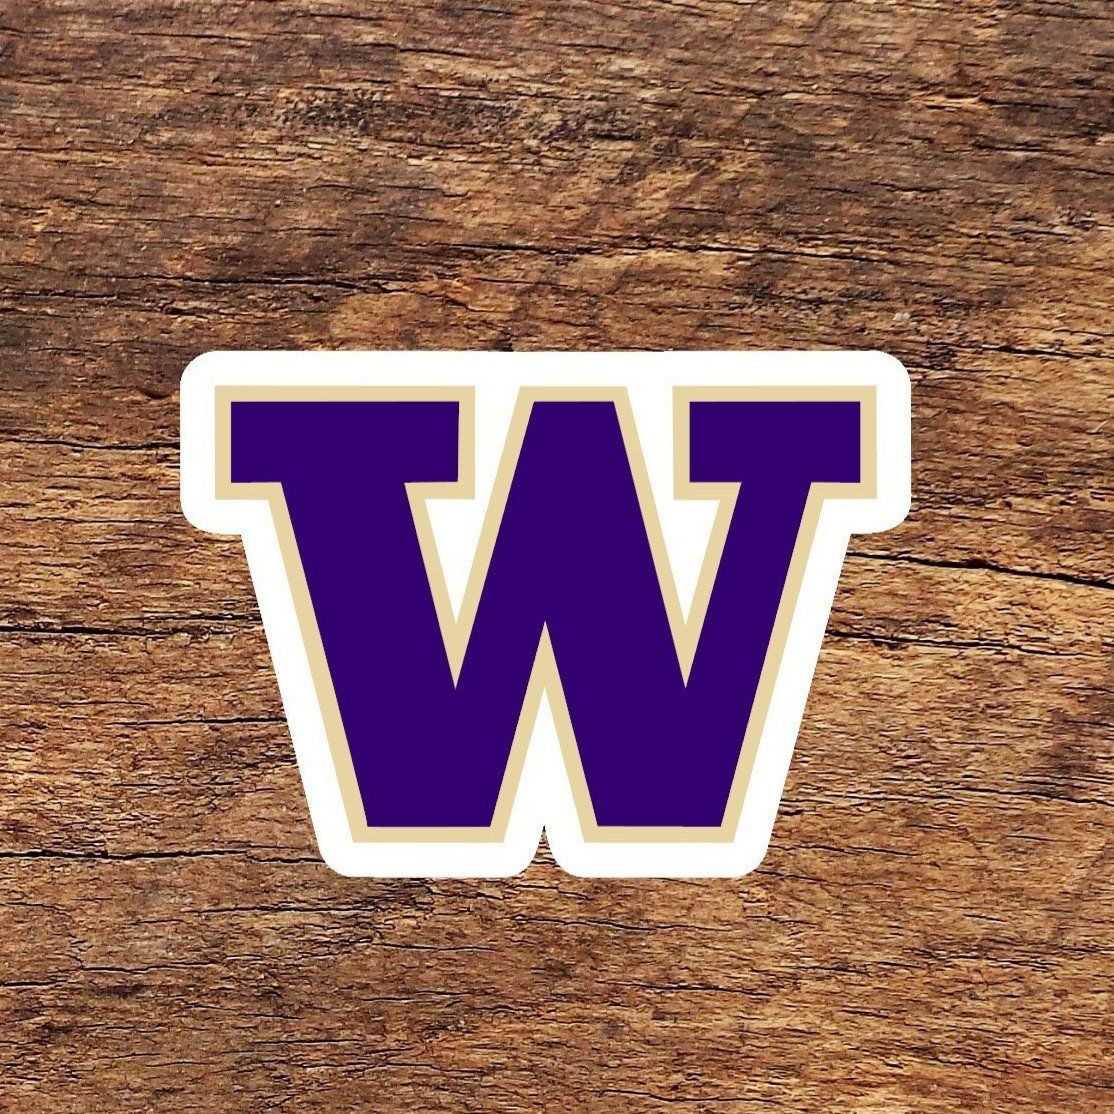 Excited To Share The Latest Addition To My Etsy Shop University Of Washington Huskies Vinyl Sticker Peel And Stic Phone Decals Vinyl Sticker Laptop Stickers [ 1114 x 1114 Pixel ]